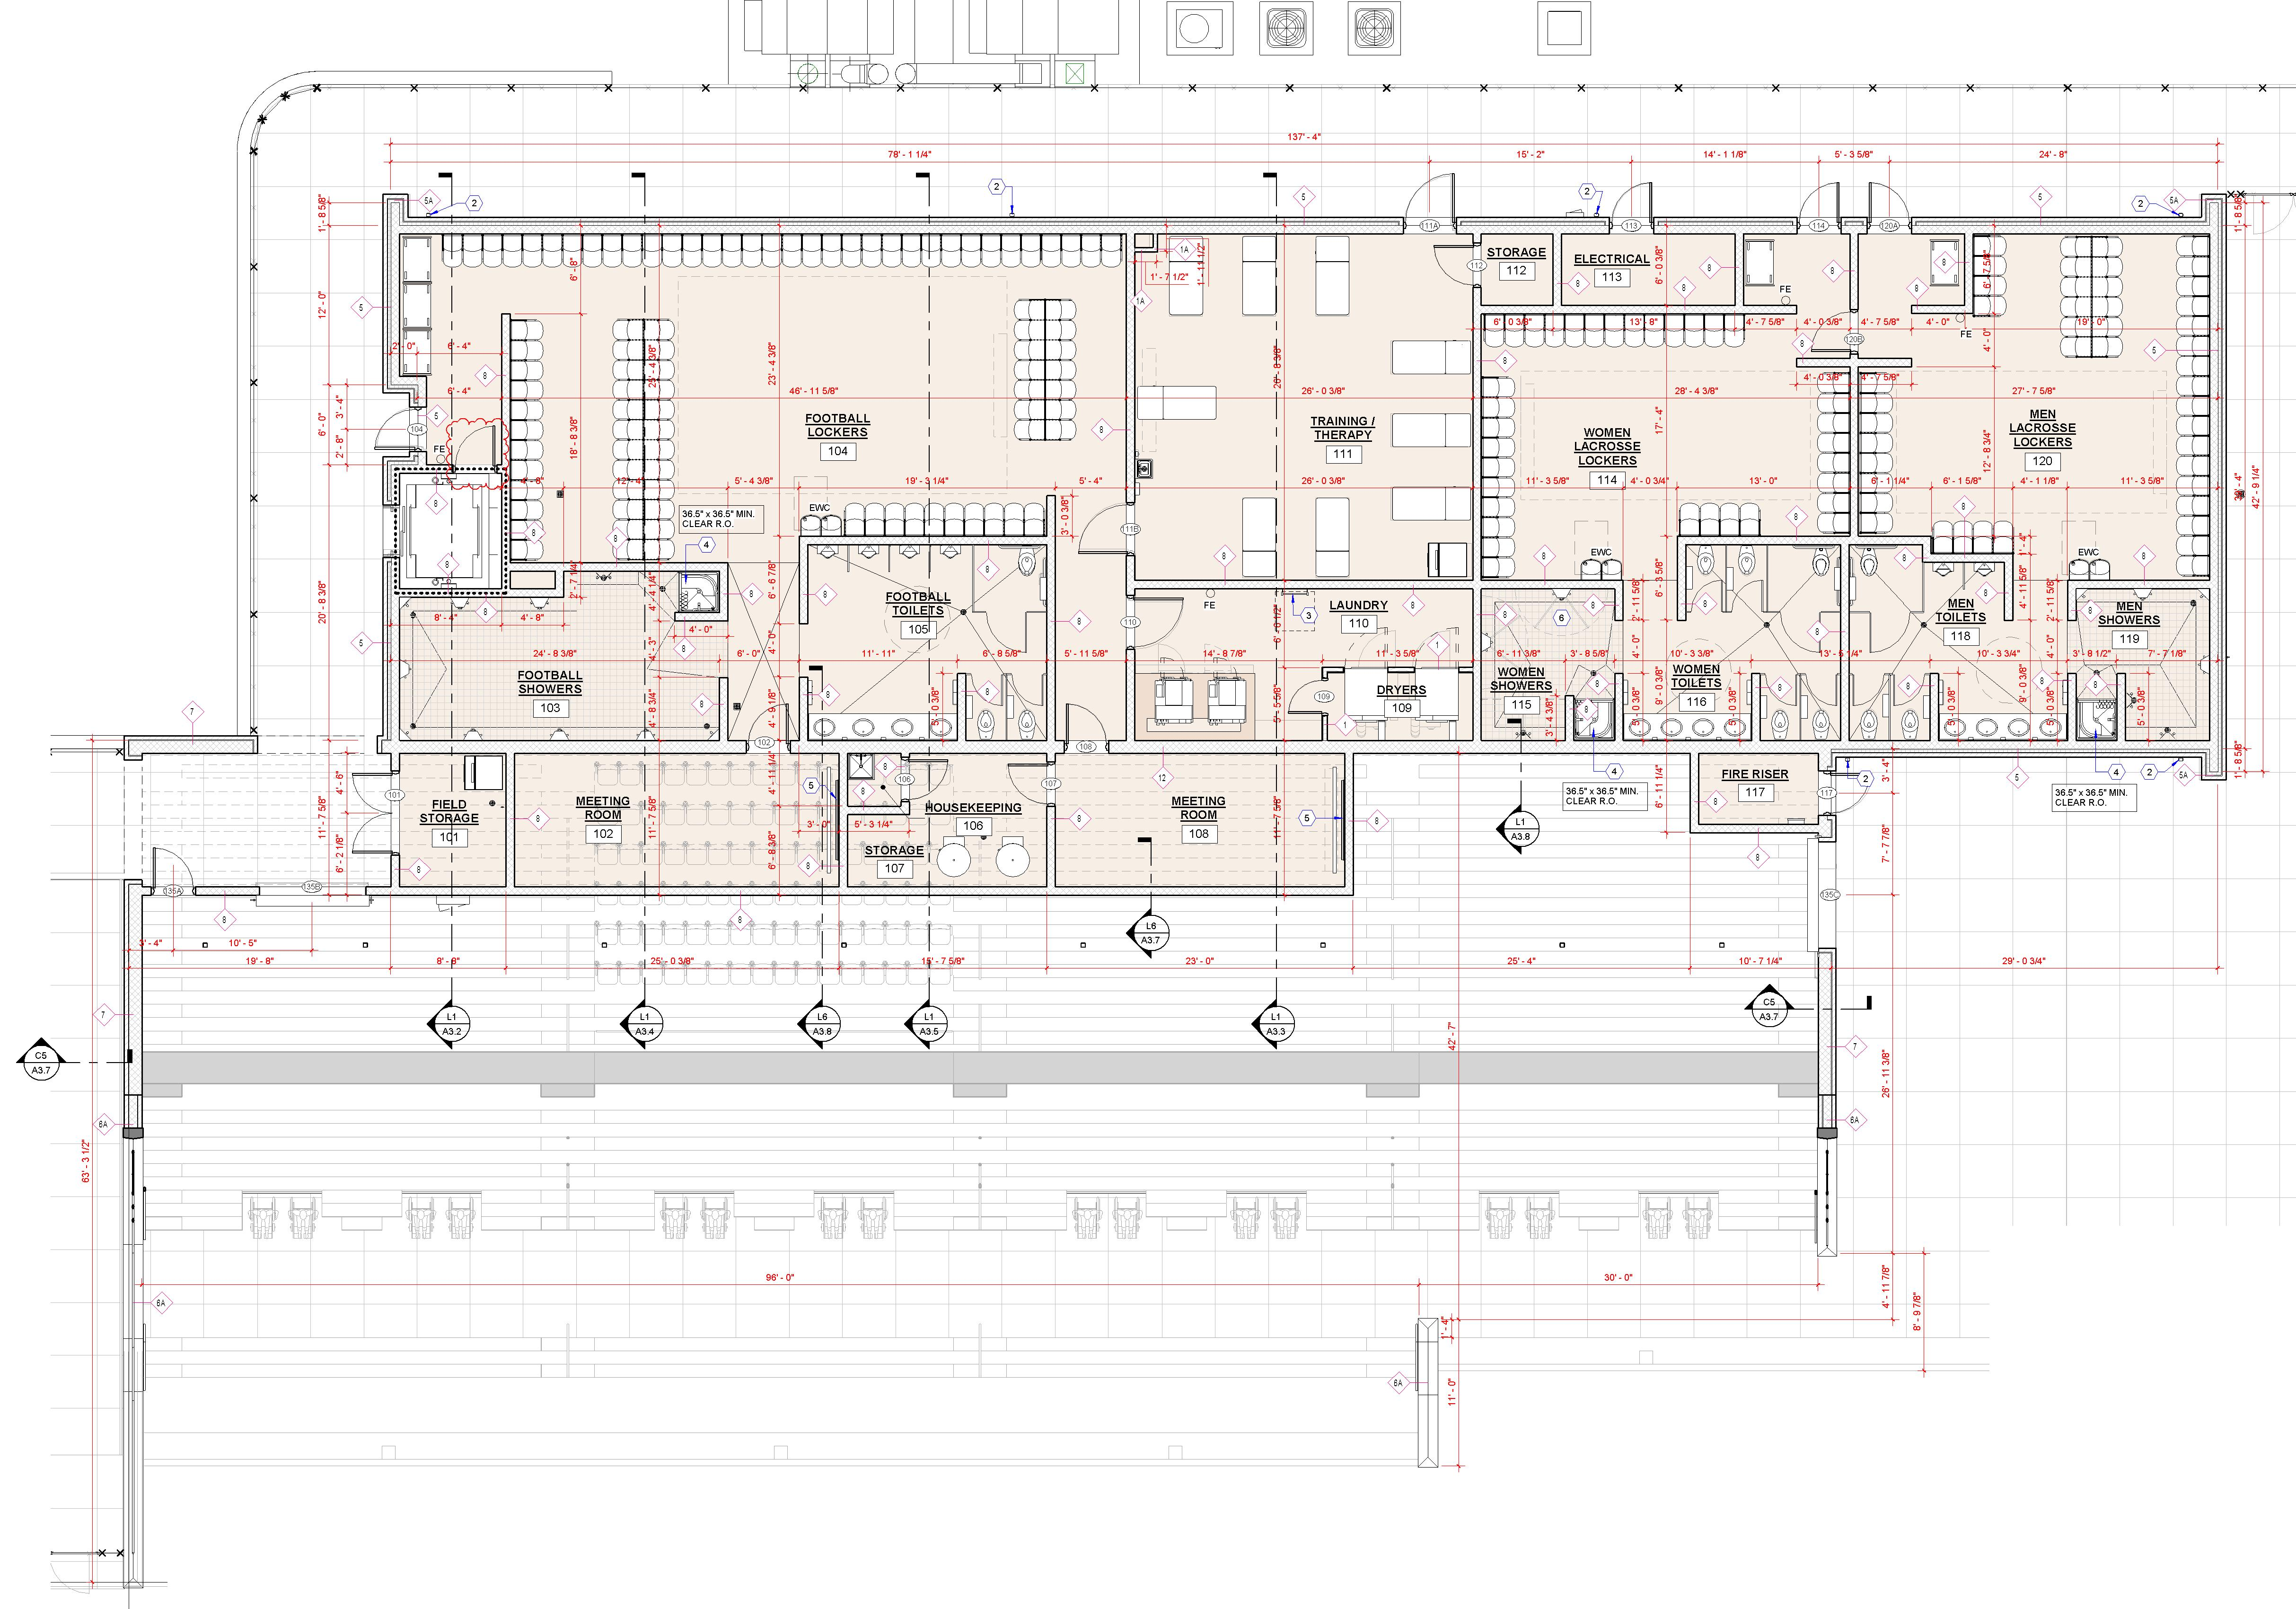 1506_ - Floor Plan - Level 1 - EP - Lockers.jpg